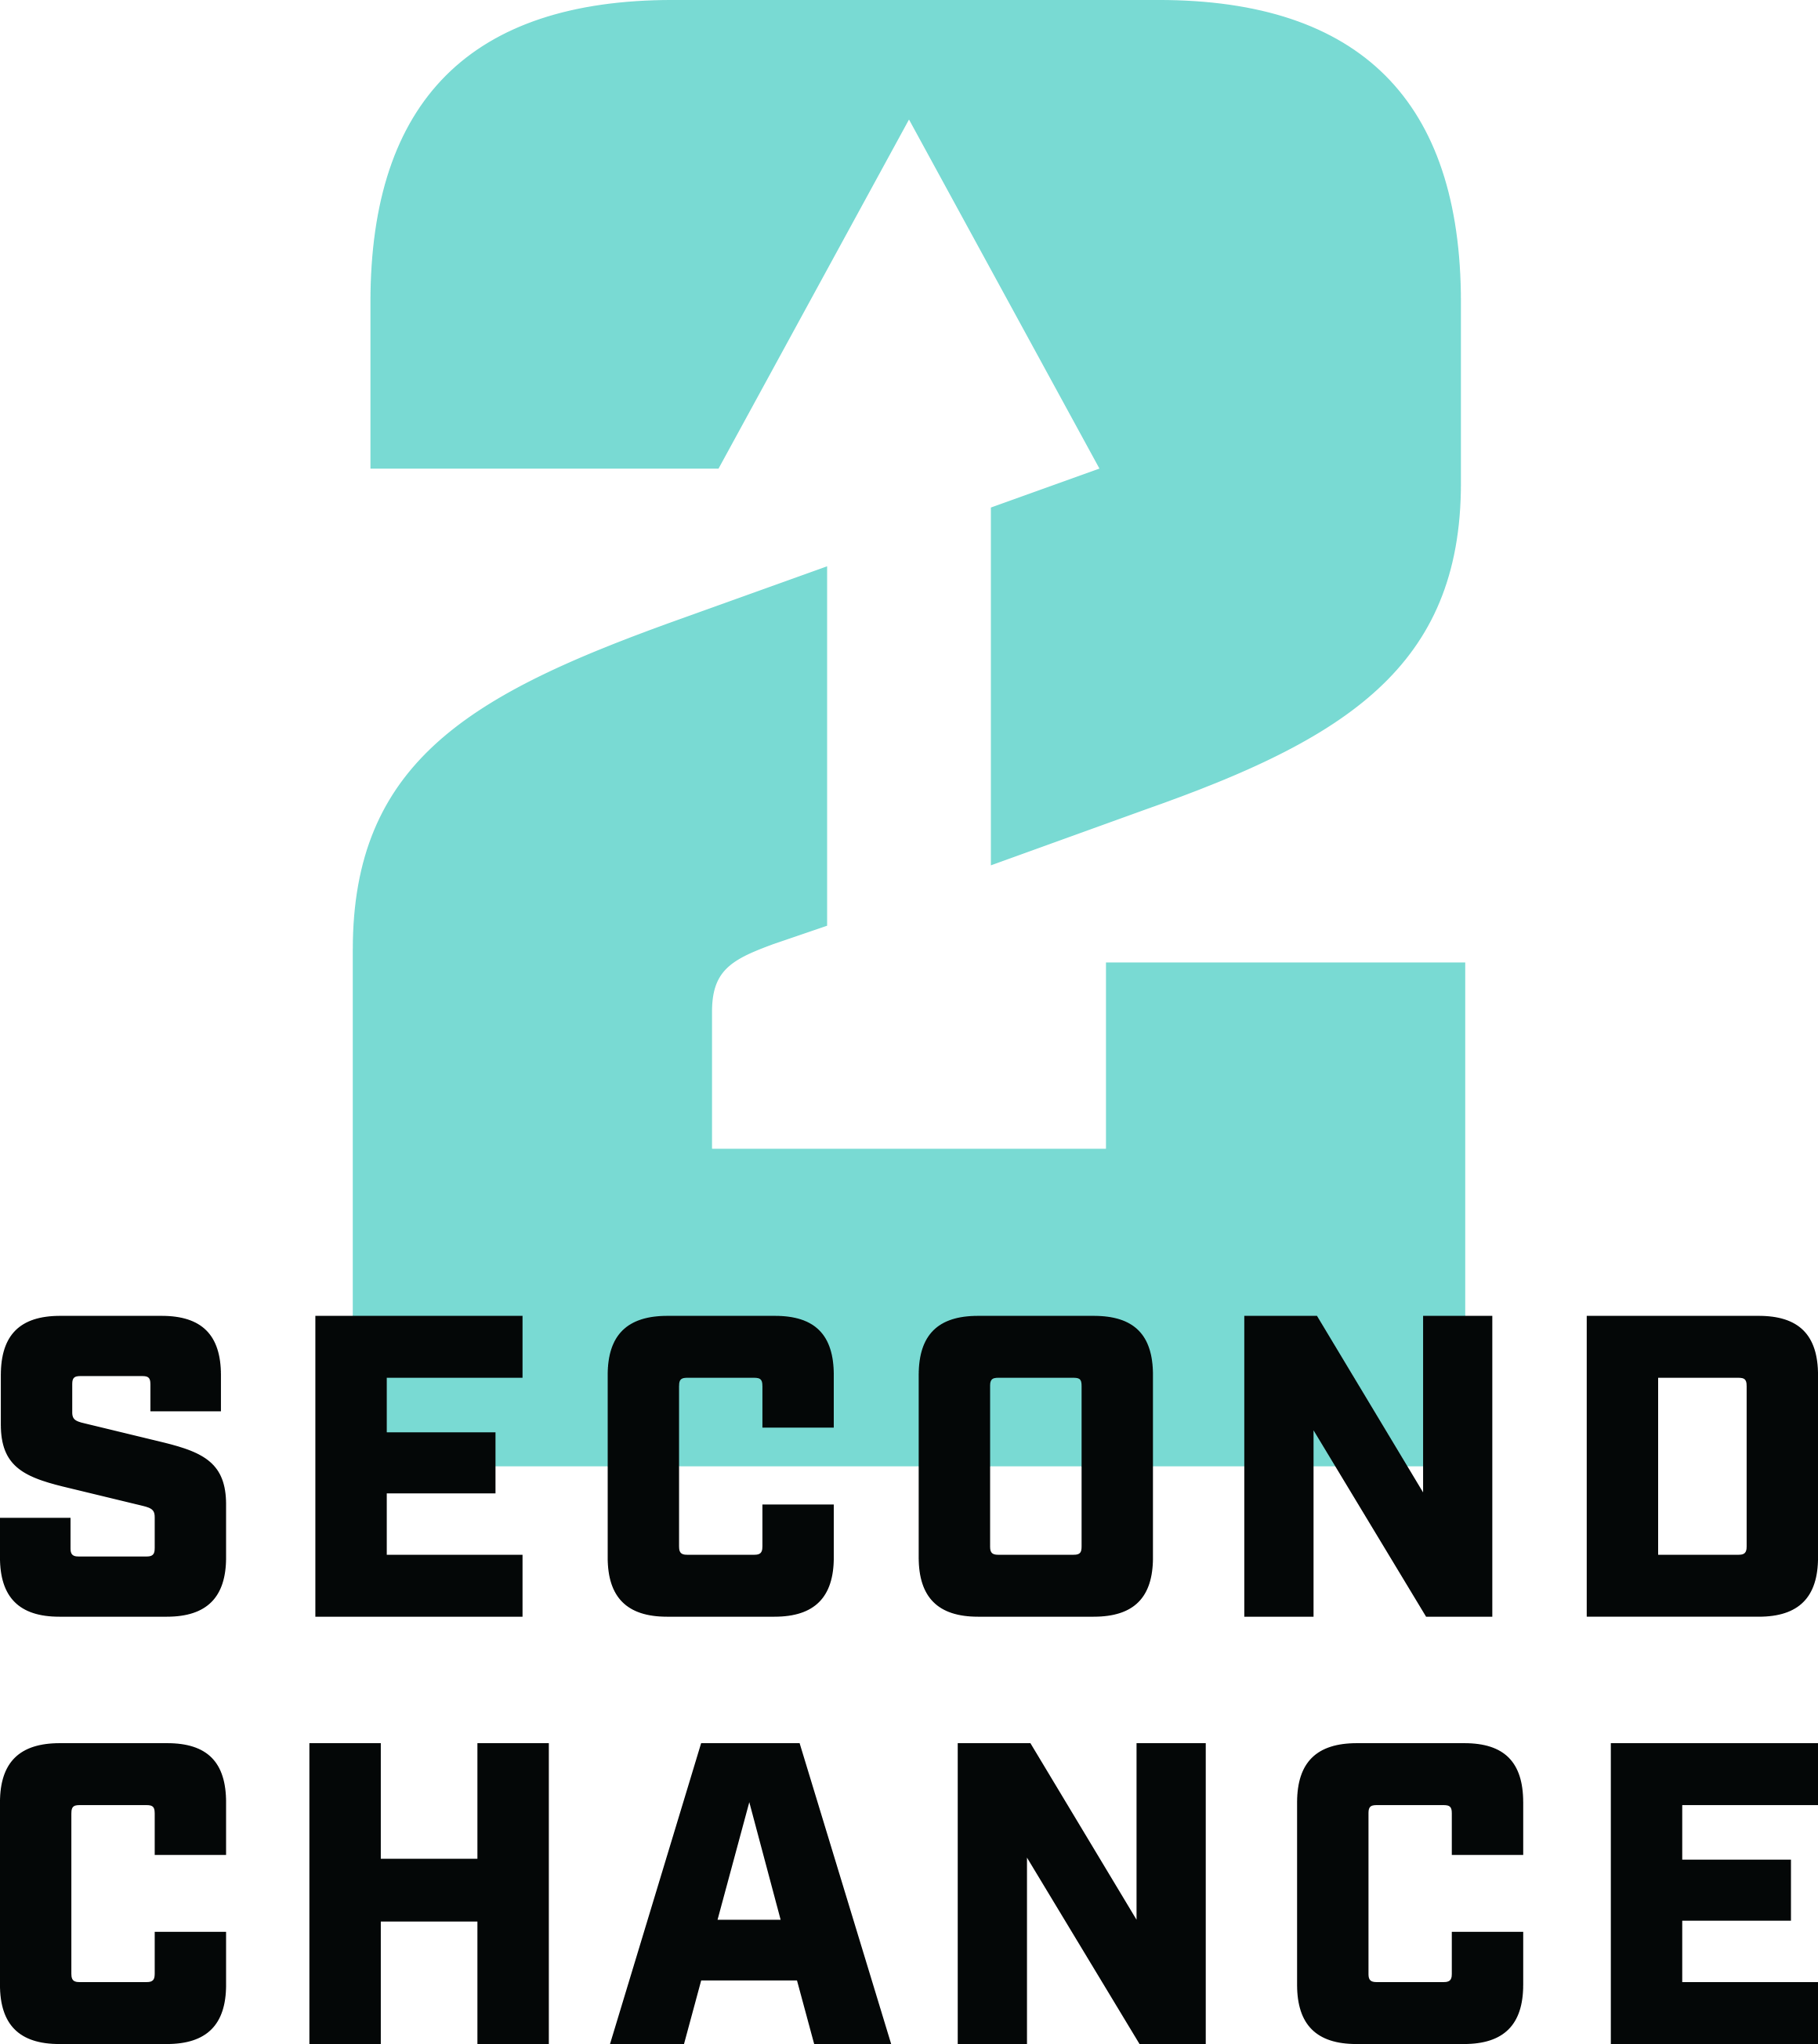 Second Chance - Branding